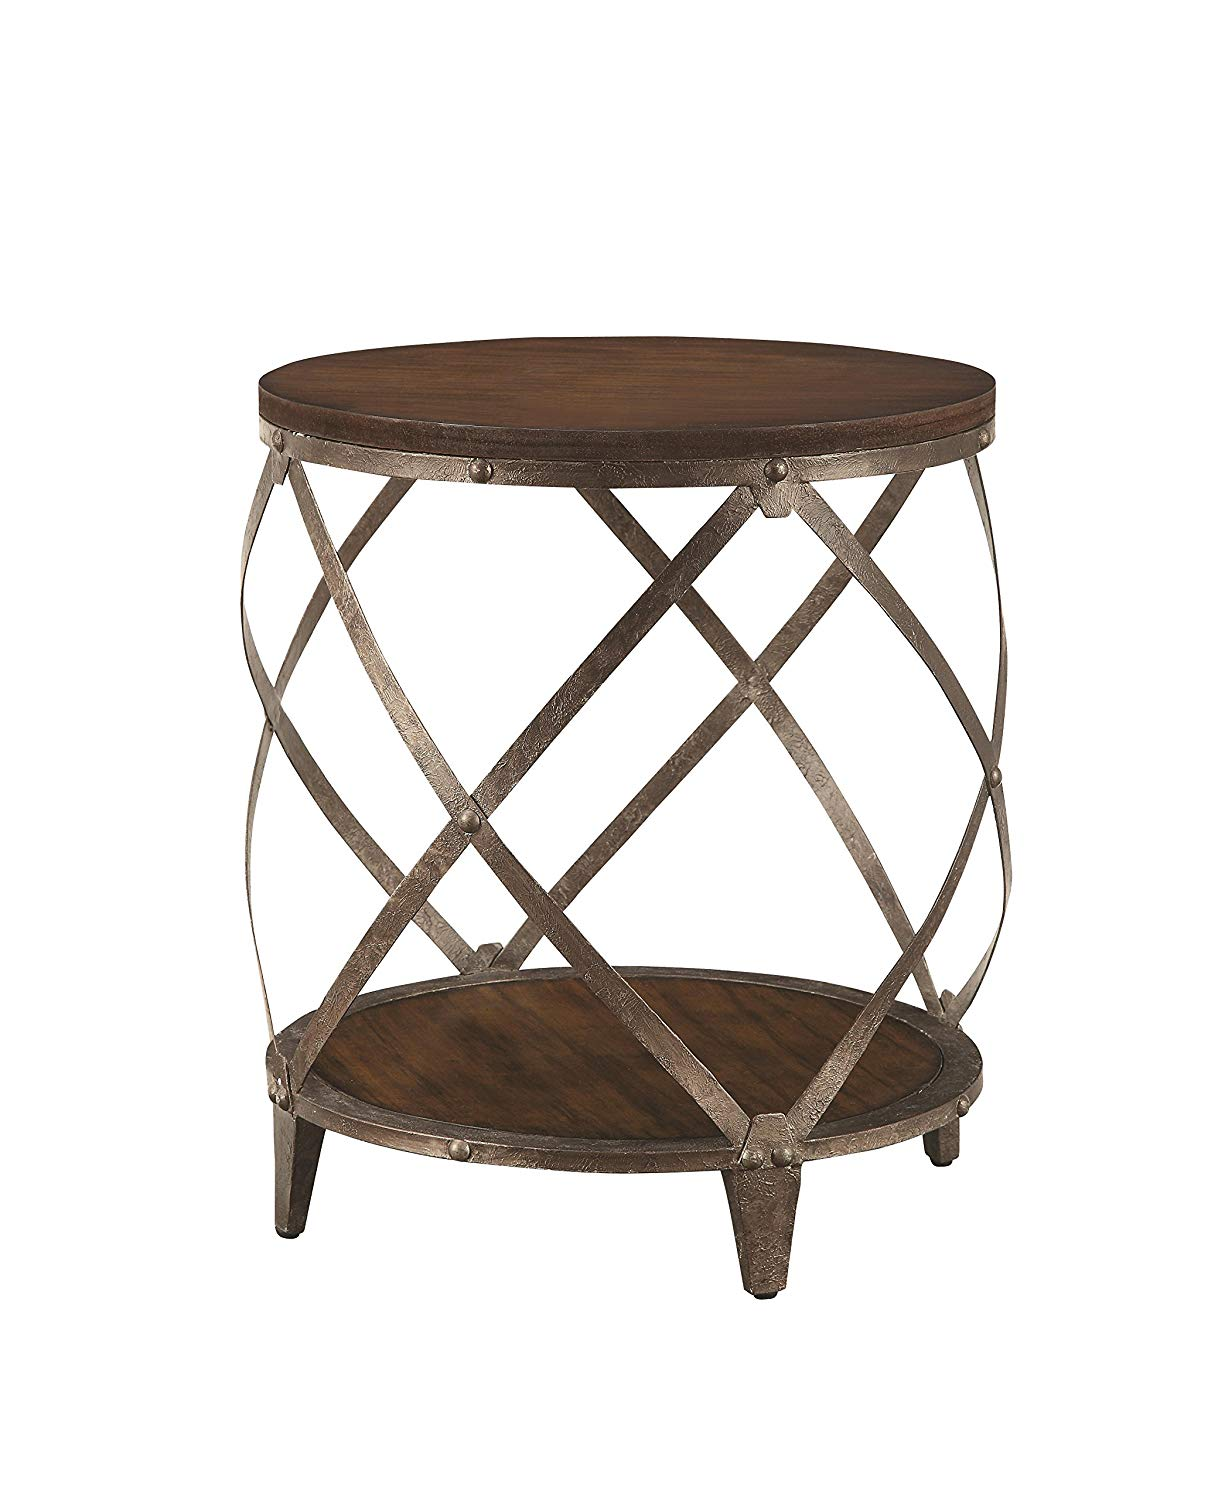 metal accent table with drum shape brown kitchen dining shaped bbq side antique white round end small bedside drawers garden furniture desk slim storage unit ikea decorative floor